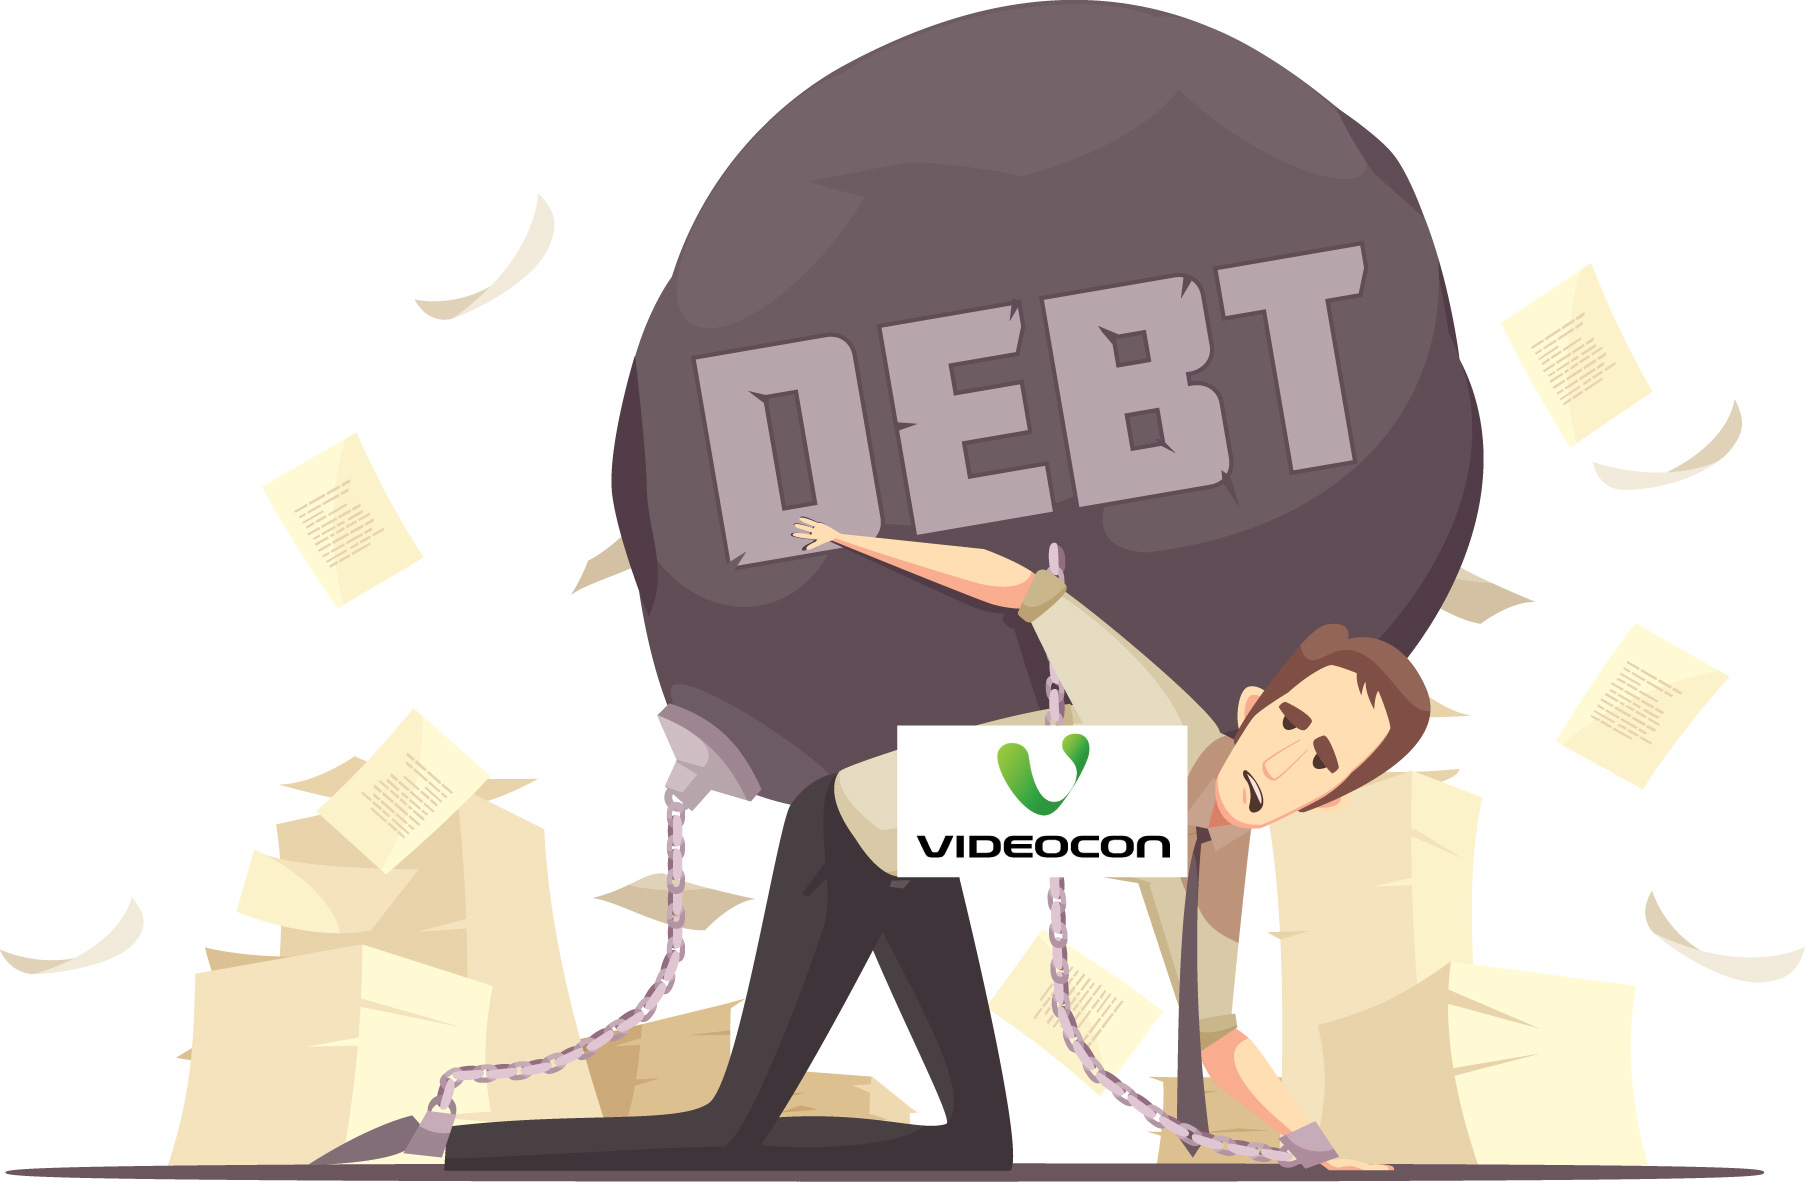 Videocon-Downfall-Insolvency